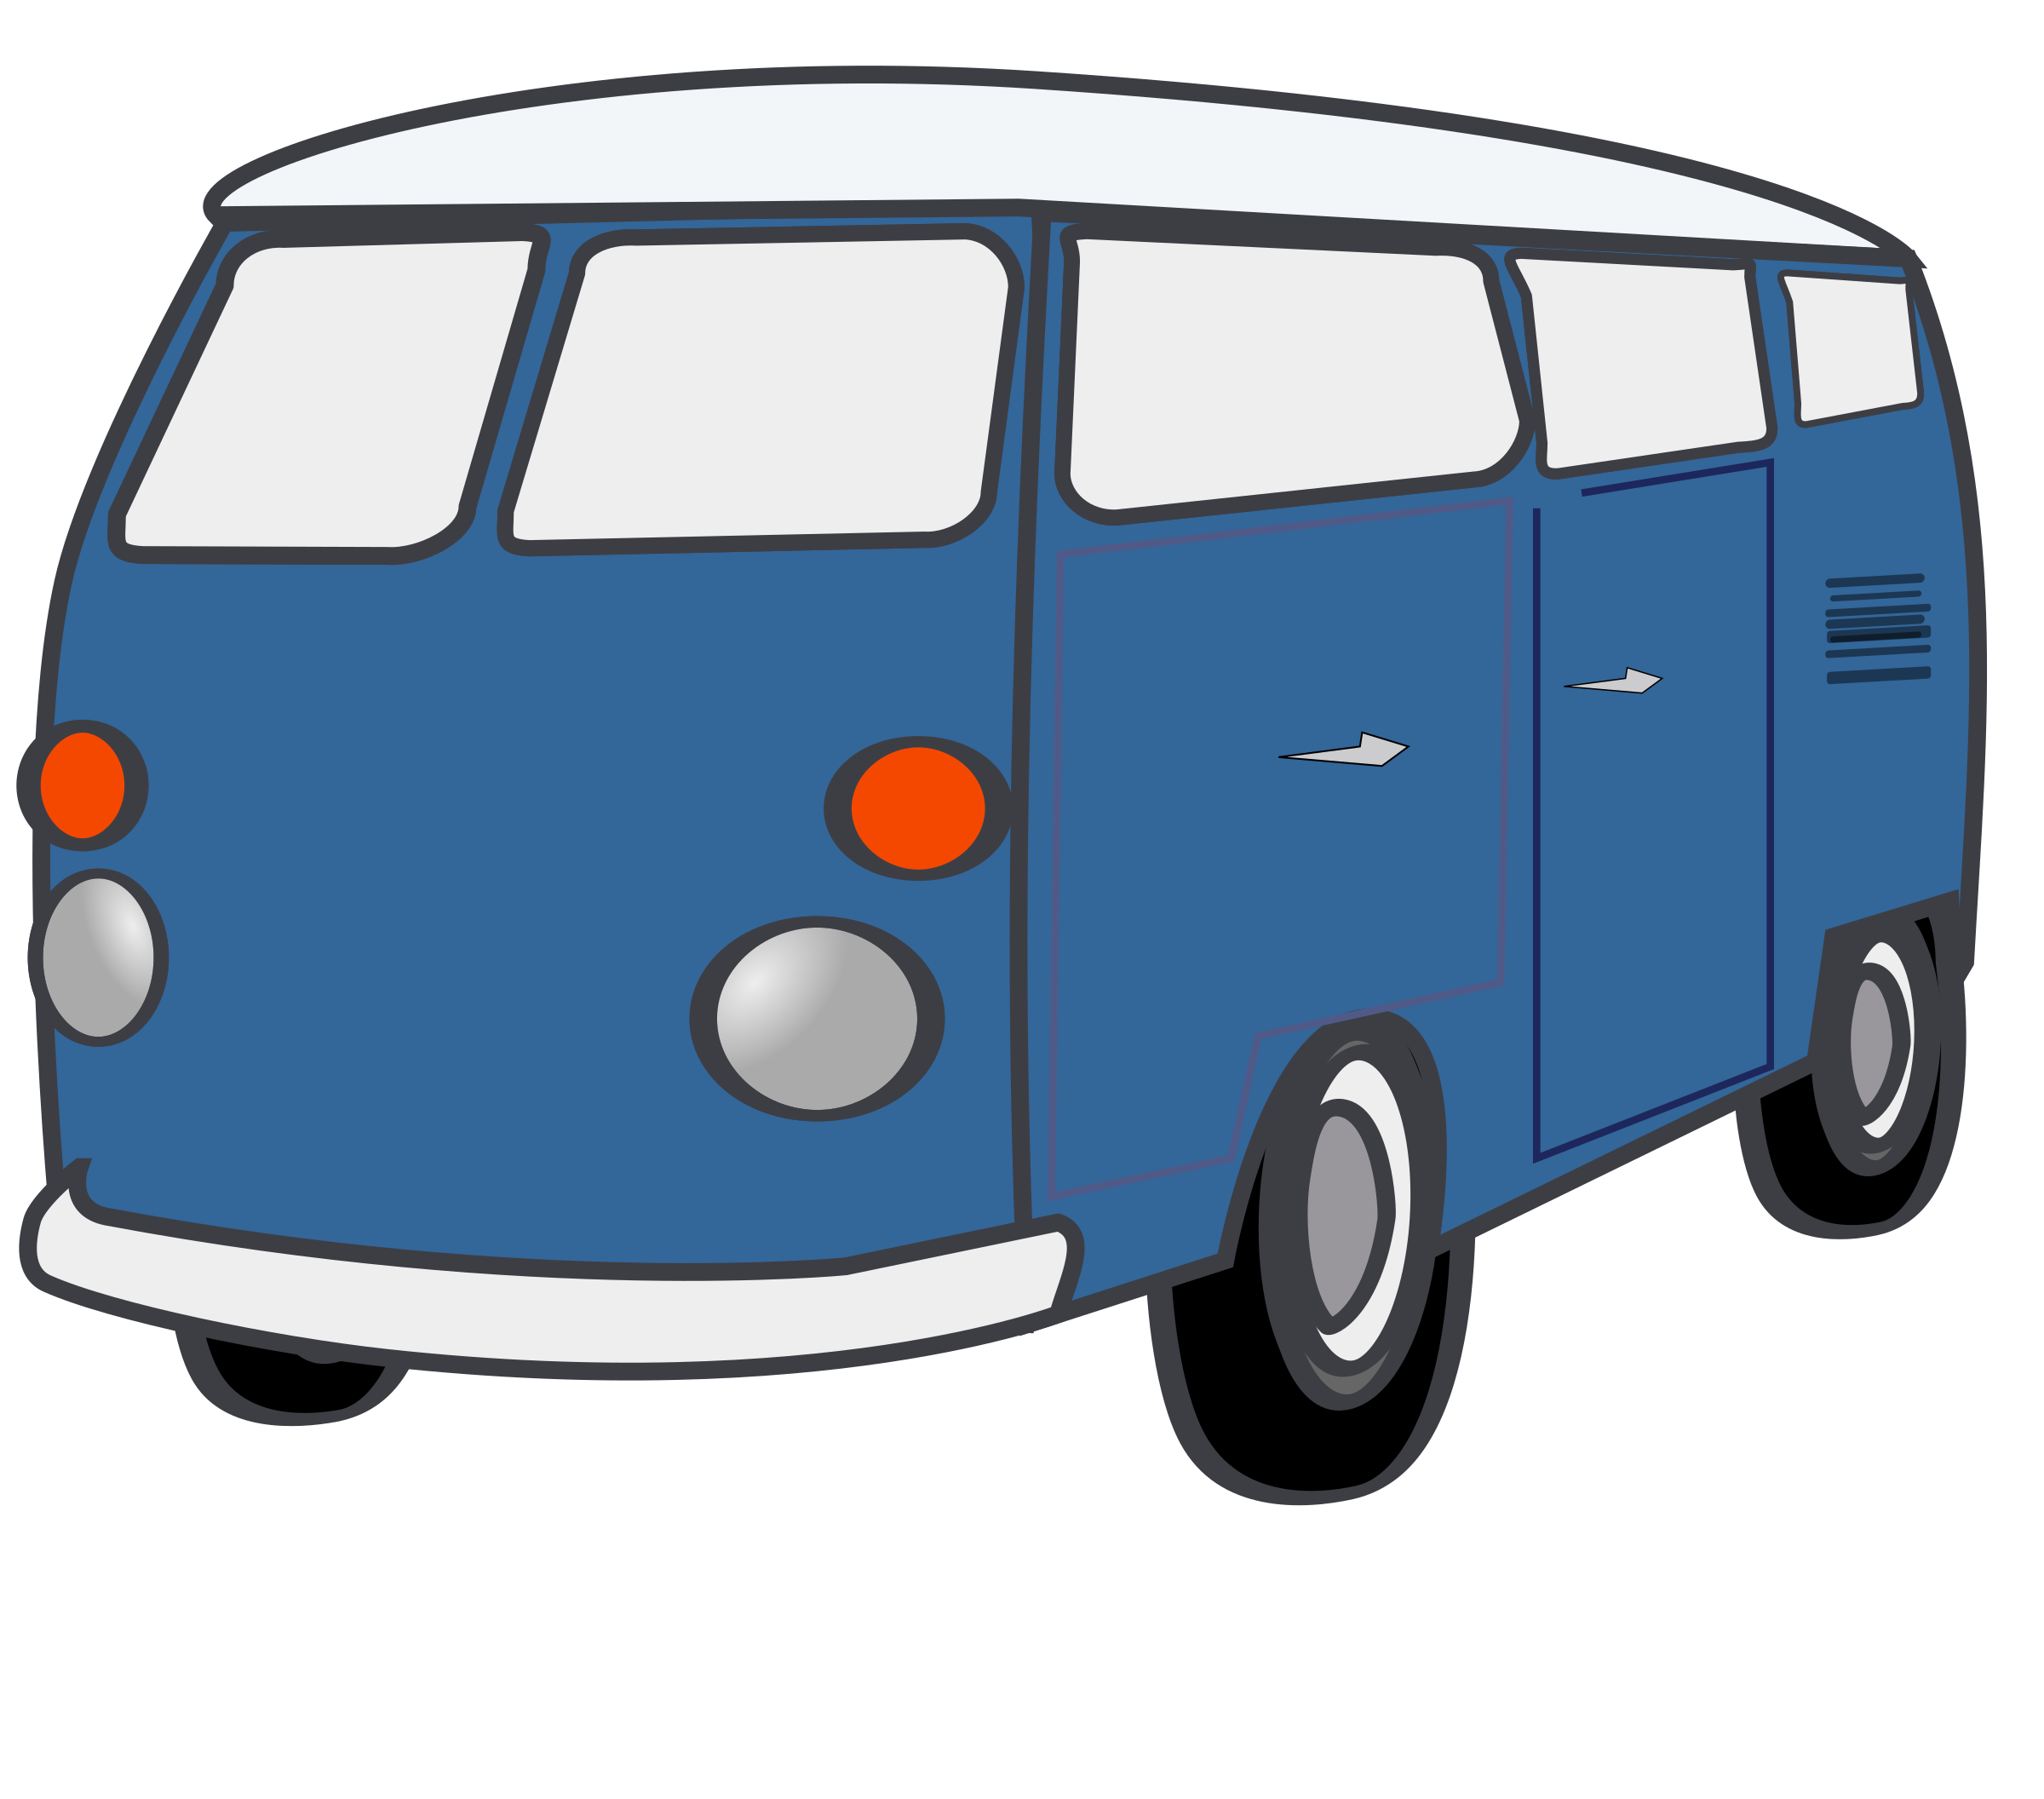 vw bus clipart at getdrawings com free for personal use vw bus rh getdrawings com